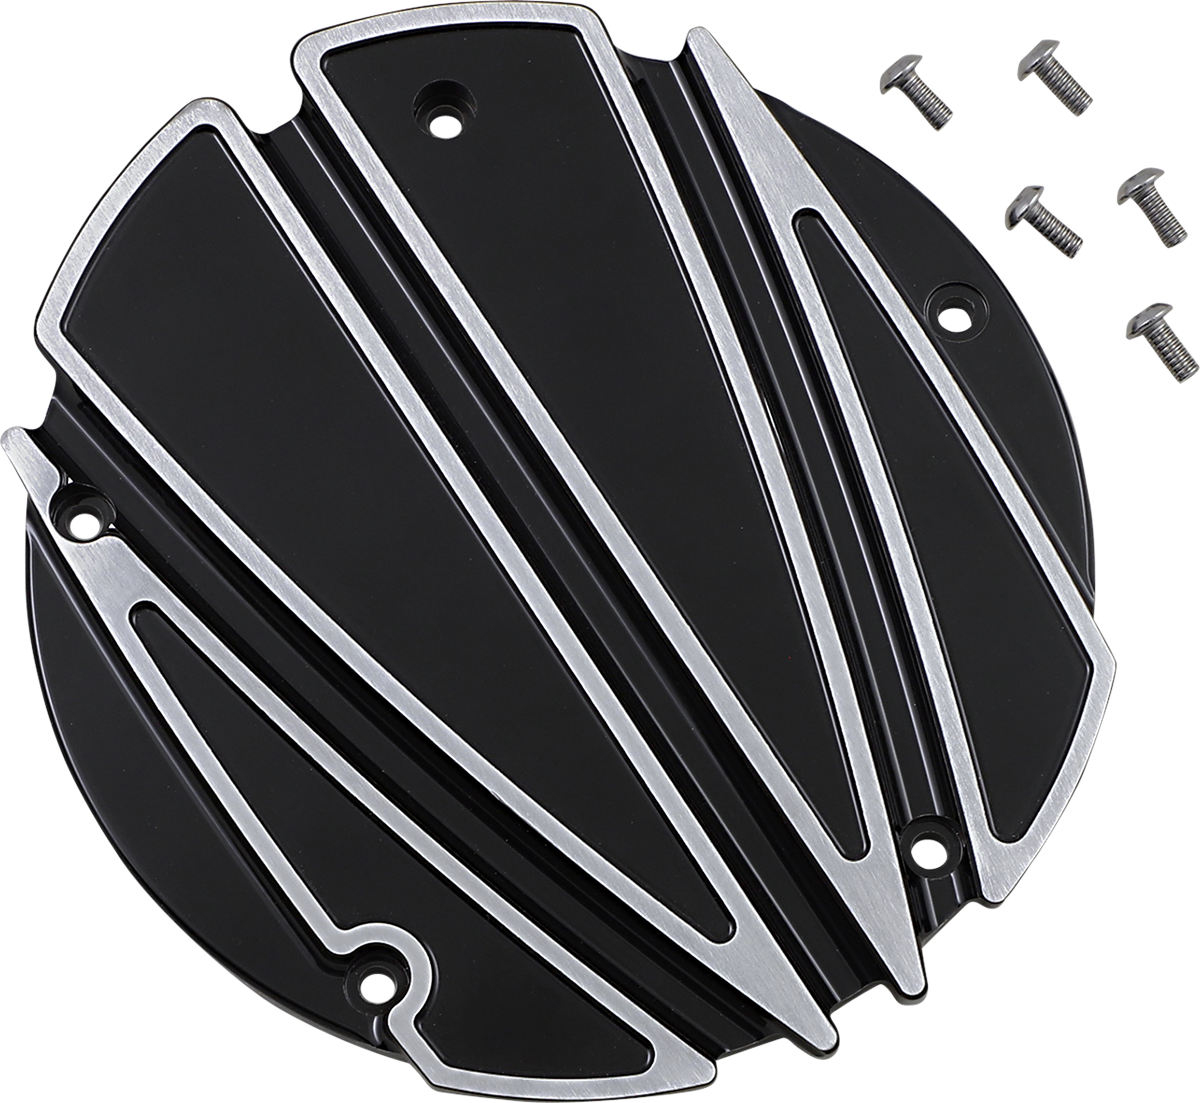 Covingtons Black 5 Hole Motorcycle Derby Cover 16-20 Harley Touring FLHX FLHR